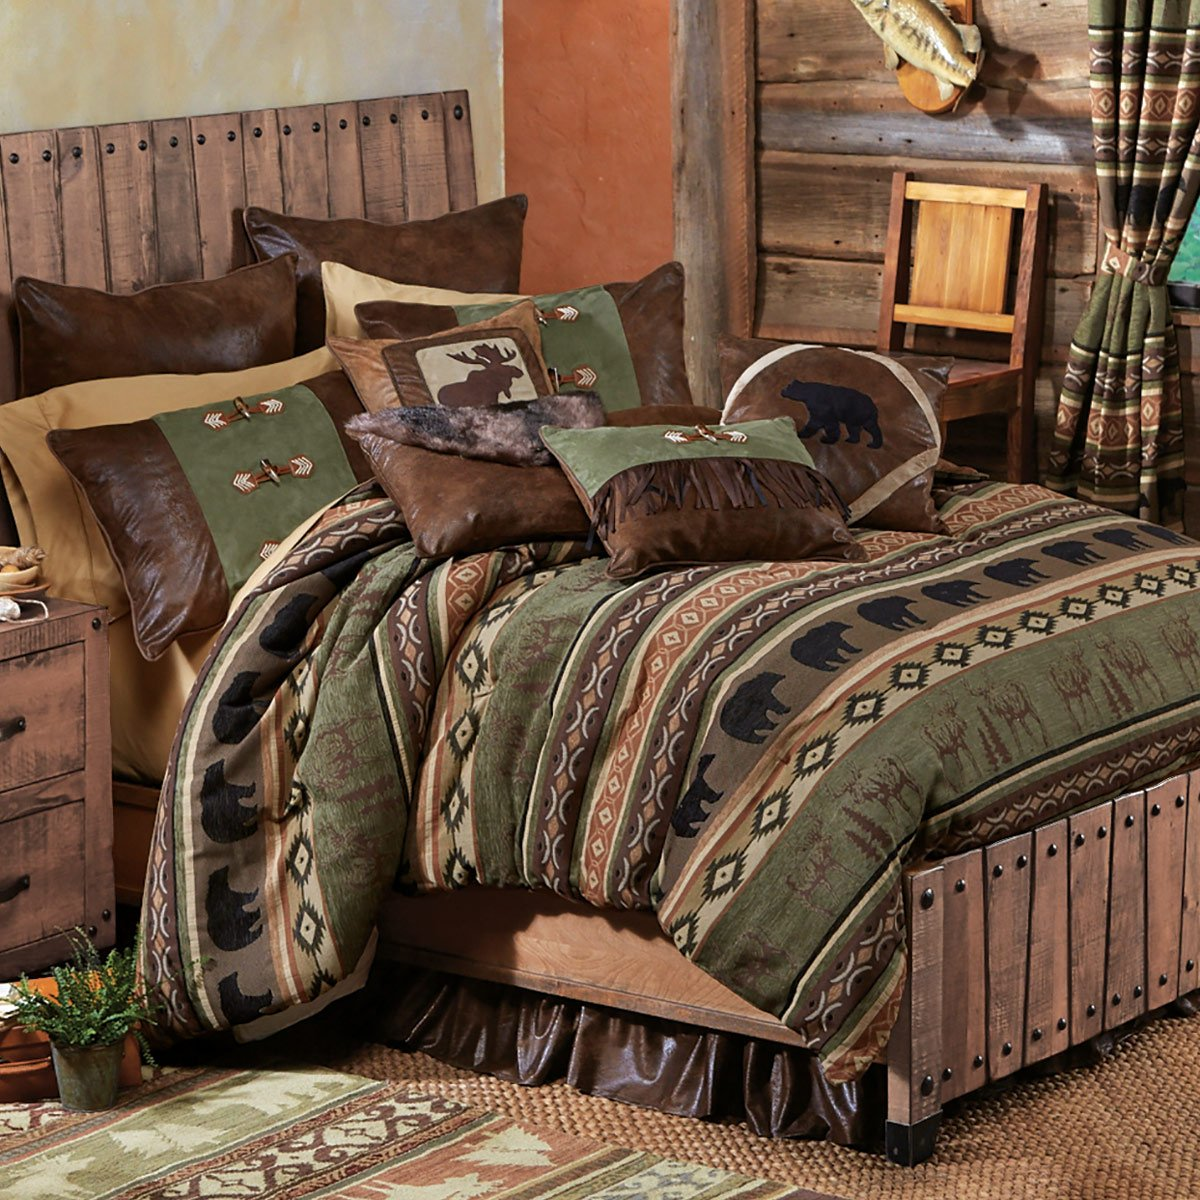 Timber Woods Moose & Bear Bed Set - Queen - Wilderness Bedding by Black Forest Decor (Image #1)